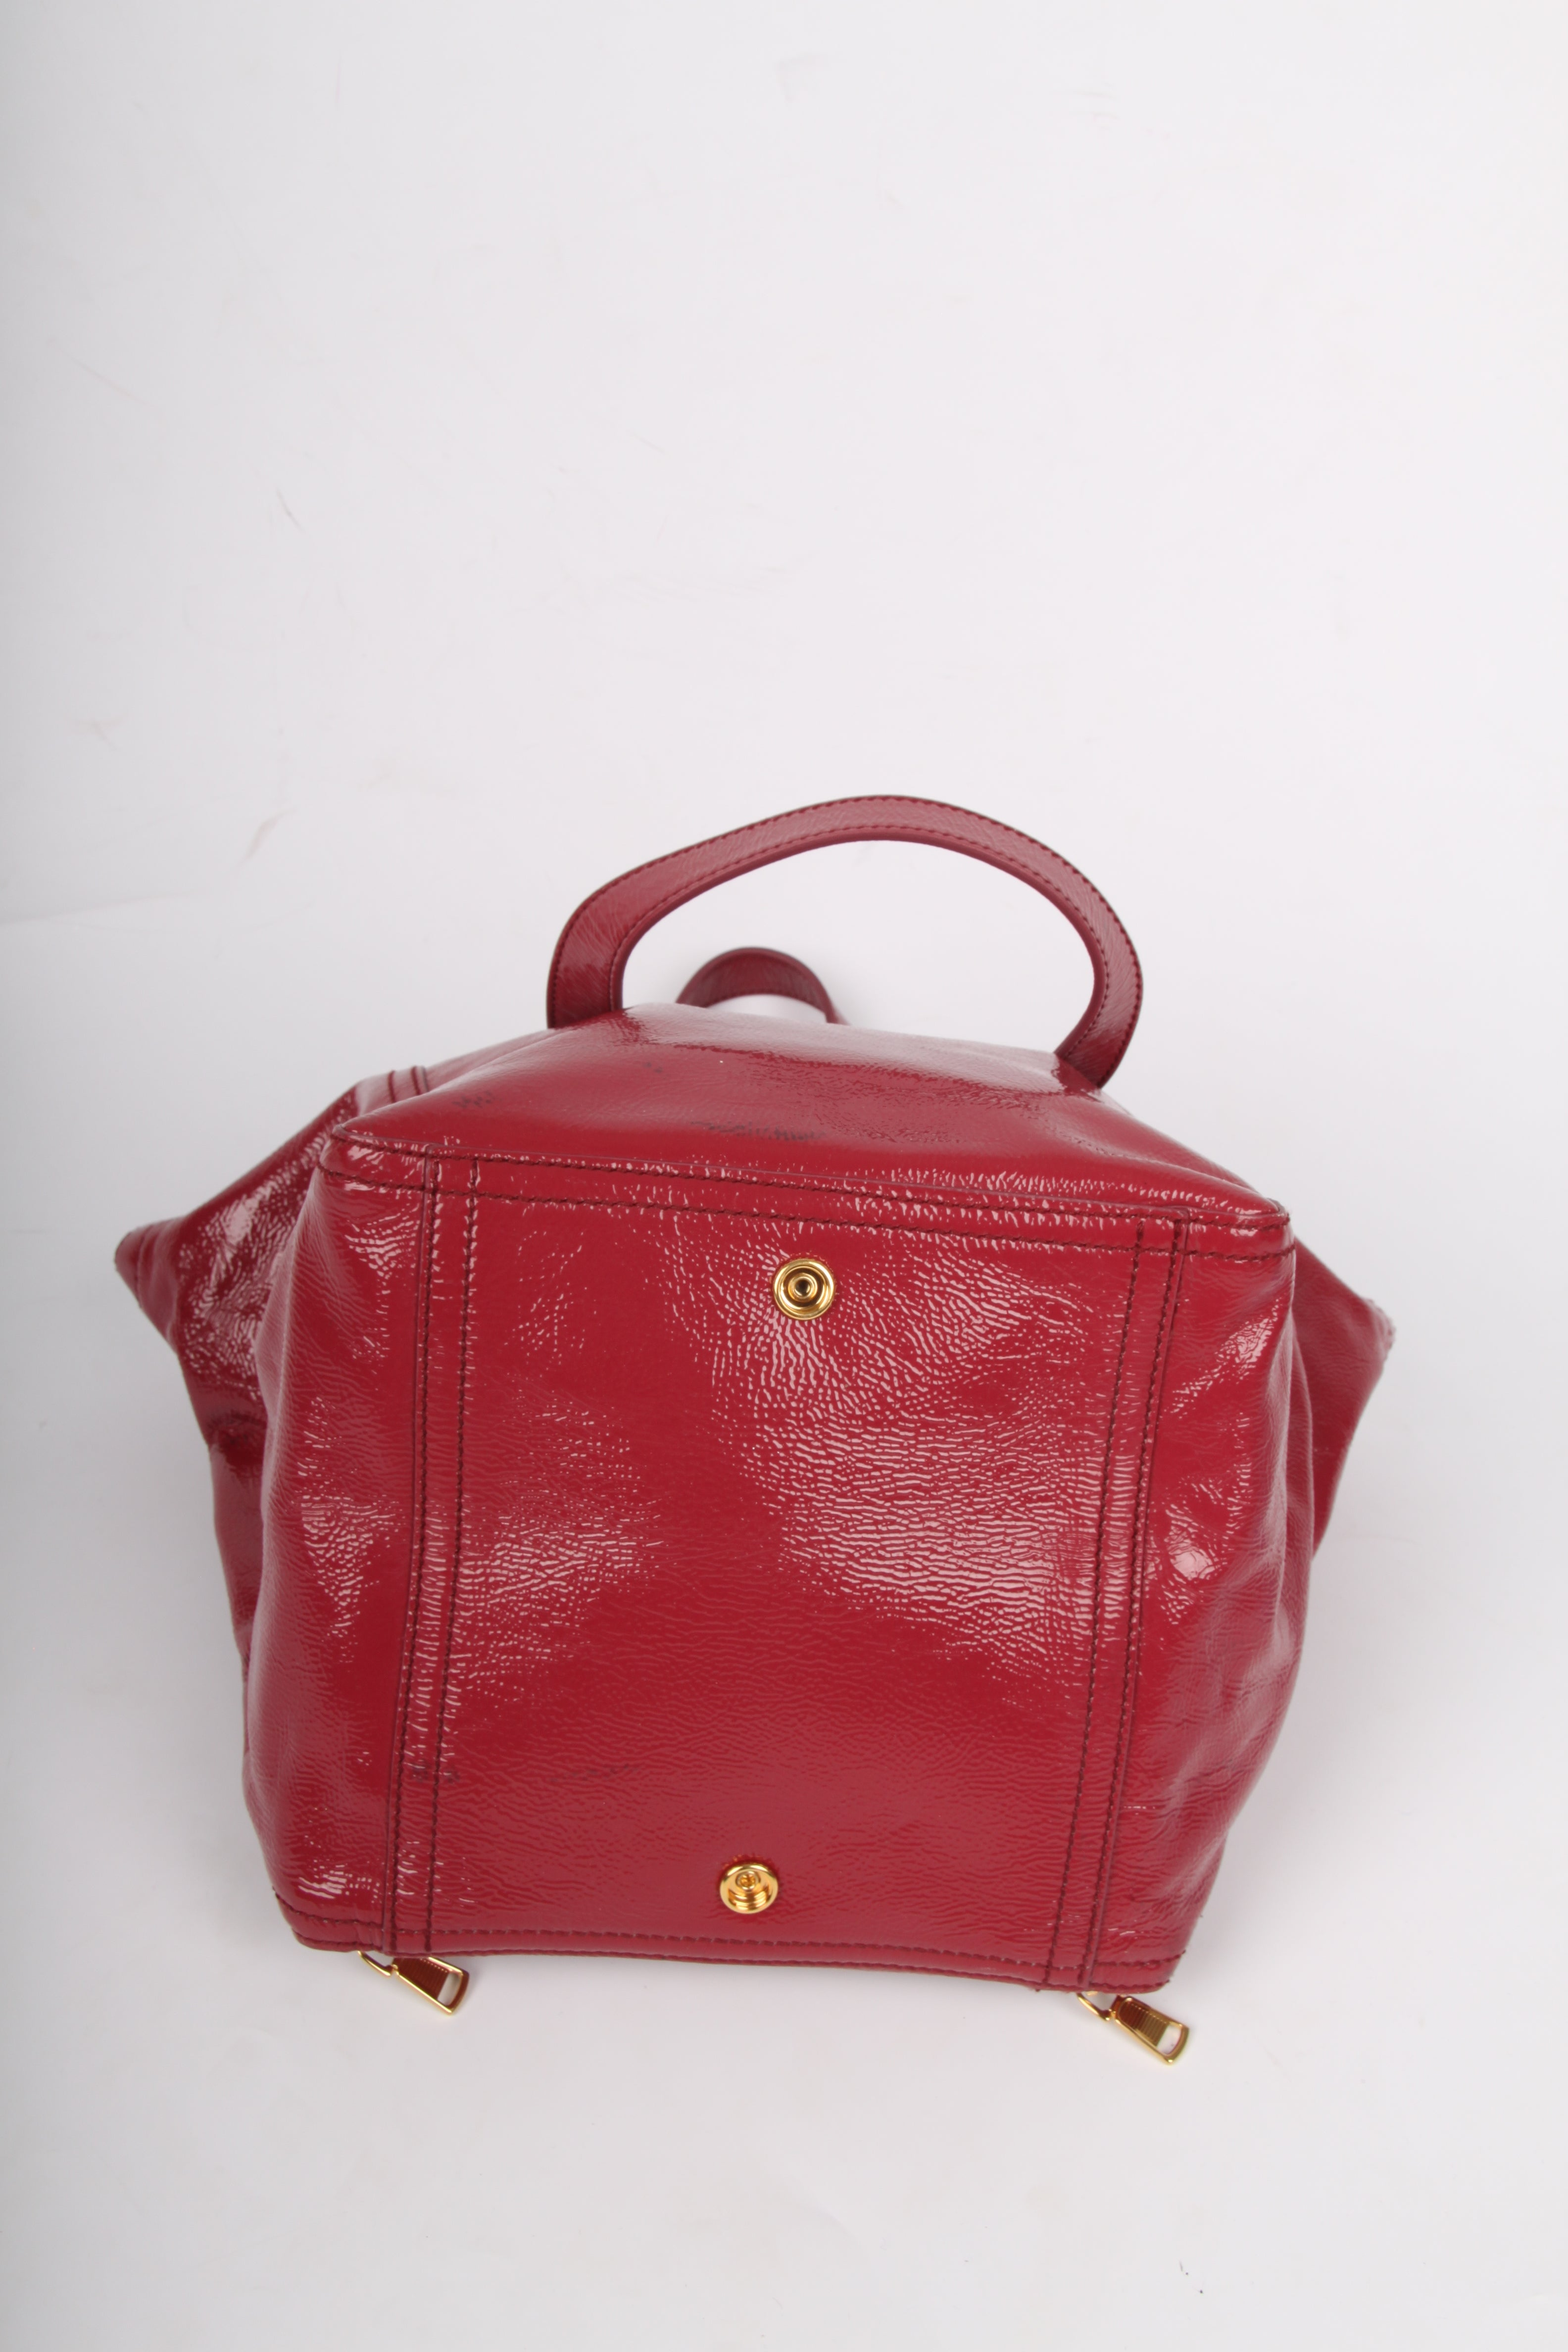 Yves Saint Laurent Downtown Bag Patent Leather - pink For Sale at 1stdibs c54f35ead8